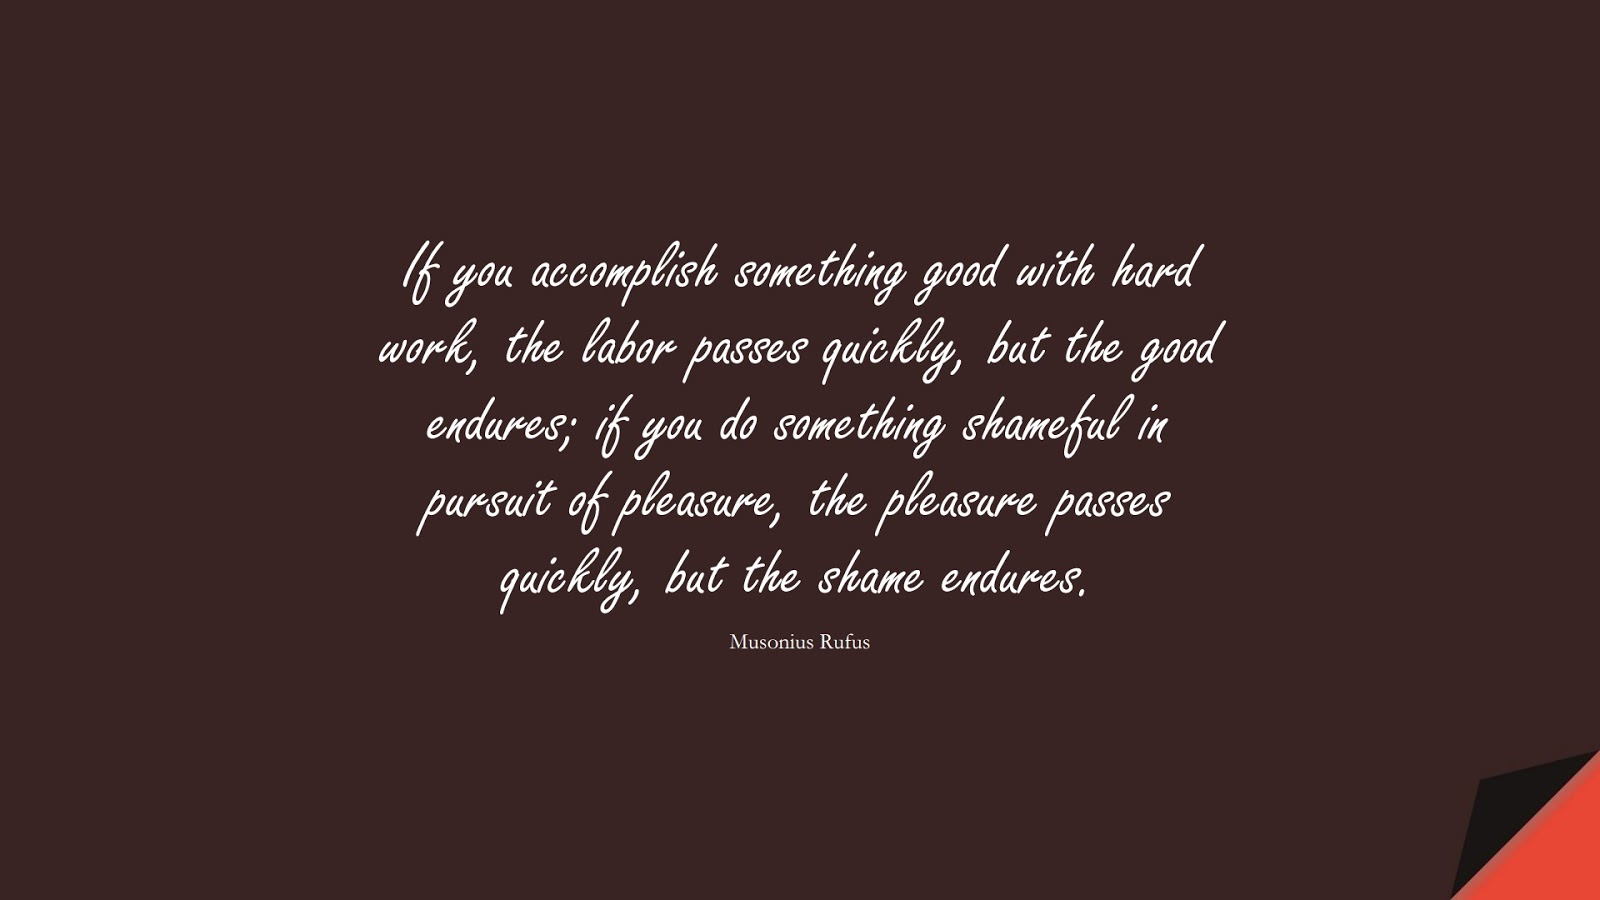 If you accomplish something good with hard work, the labor passes quickly, but the good endures; if you do something shameful in pursuit of pleasure, the pleasure passes quickly, but the shame endures. (Musonius Rufus);  #StoicQuotes